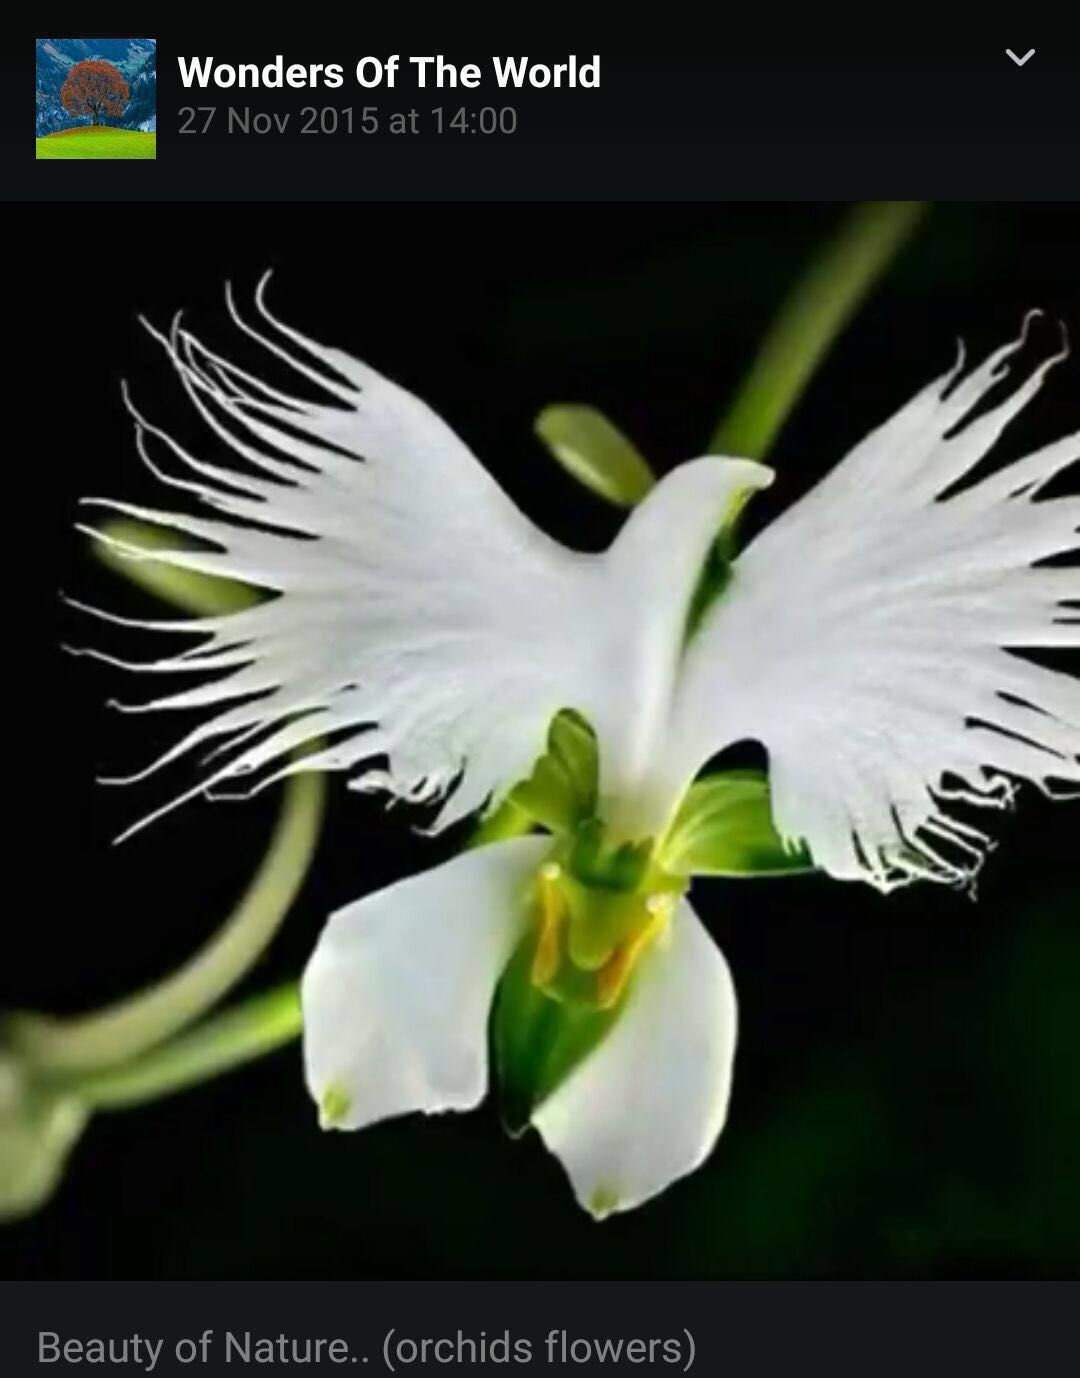 This orchid from panama is called holy spirit flower and only 200 japanese radiata flower seeds rare exotic white egret orchid seeds worlds rare orchid species orchidee garden home planting dhlflorist Images